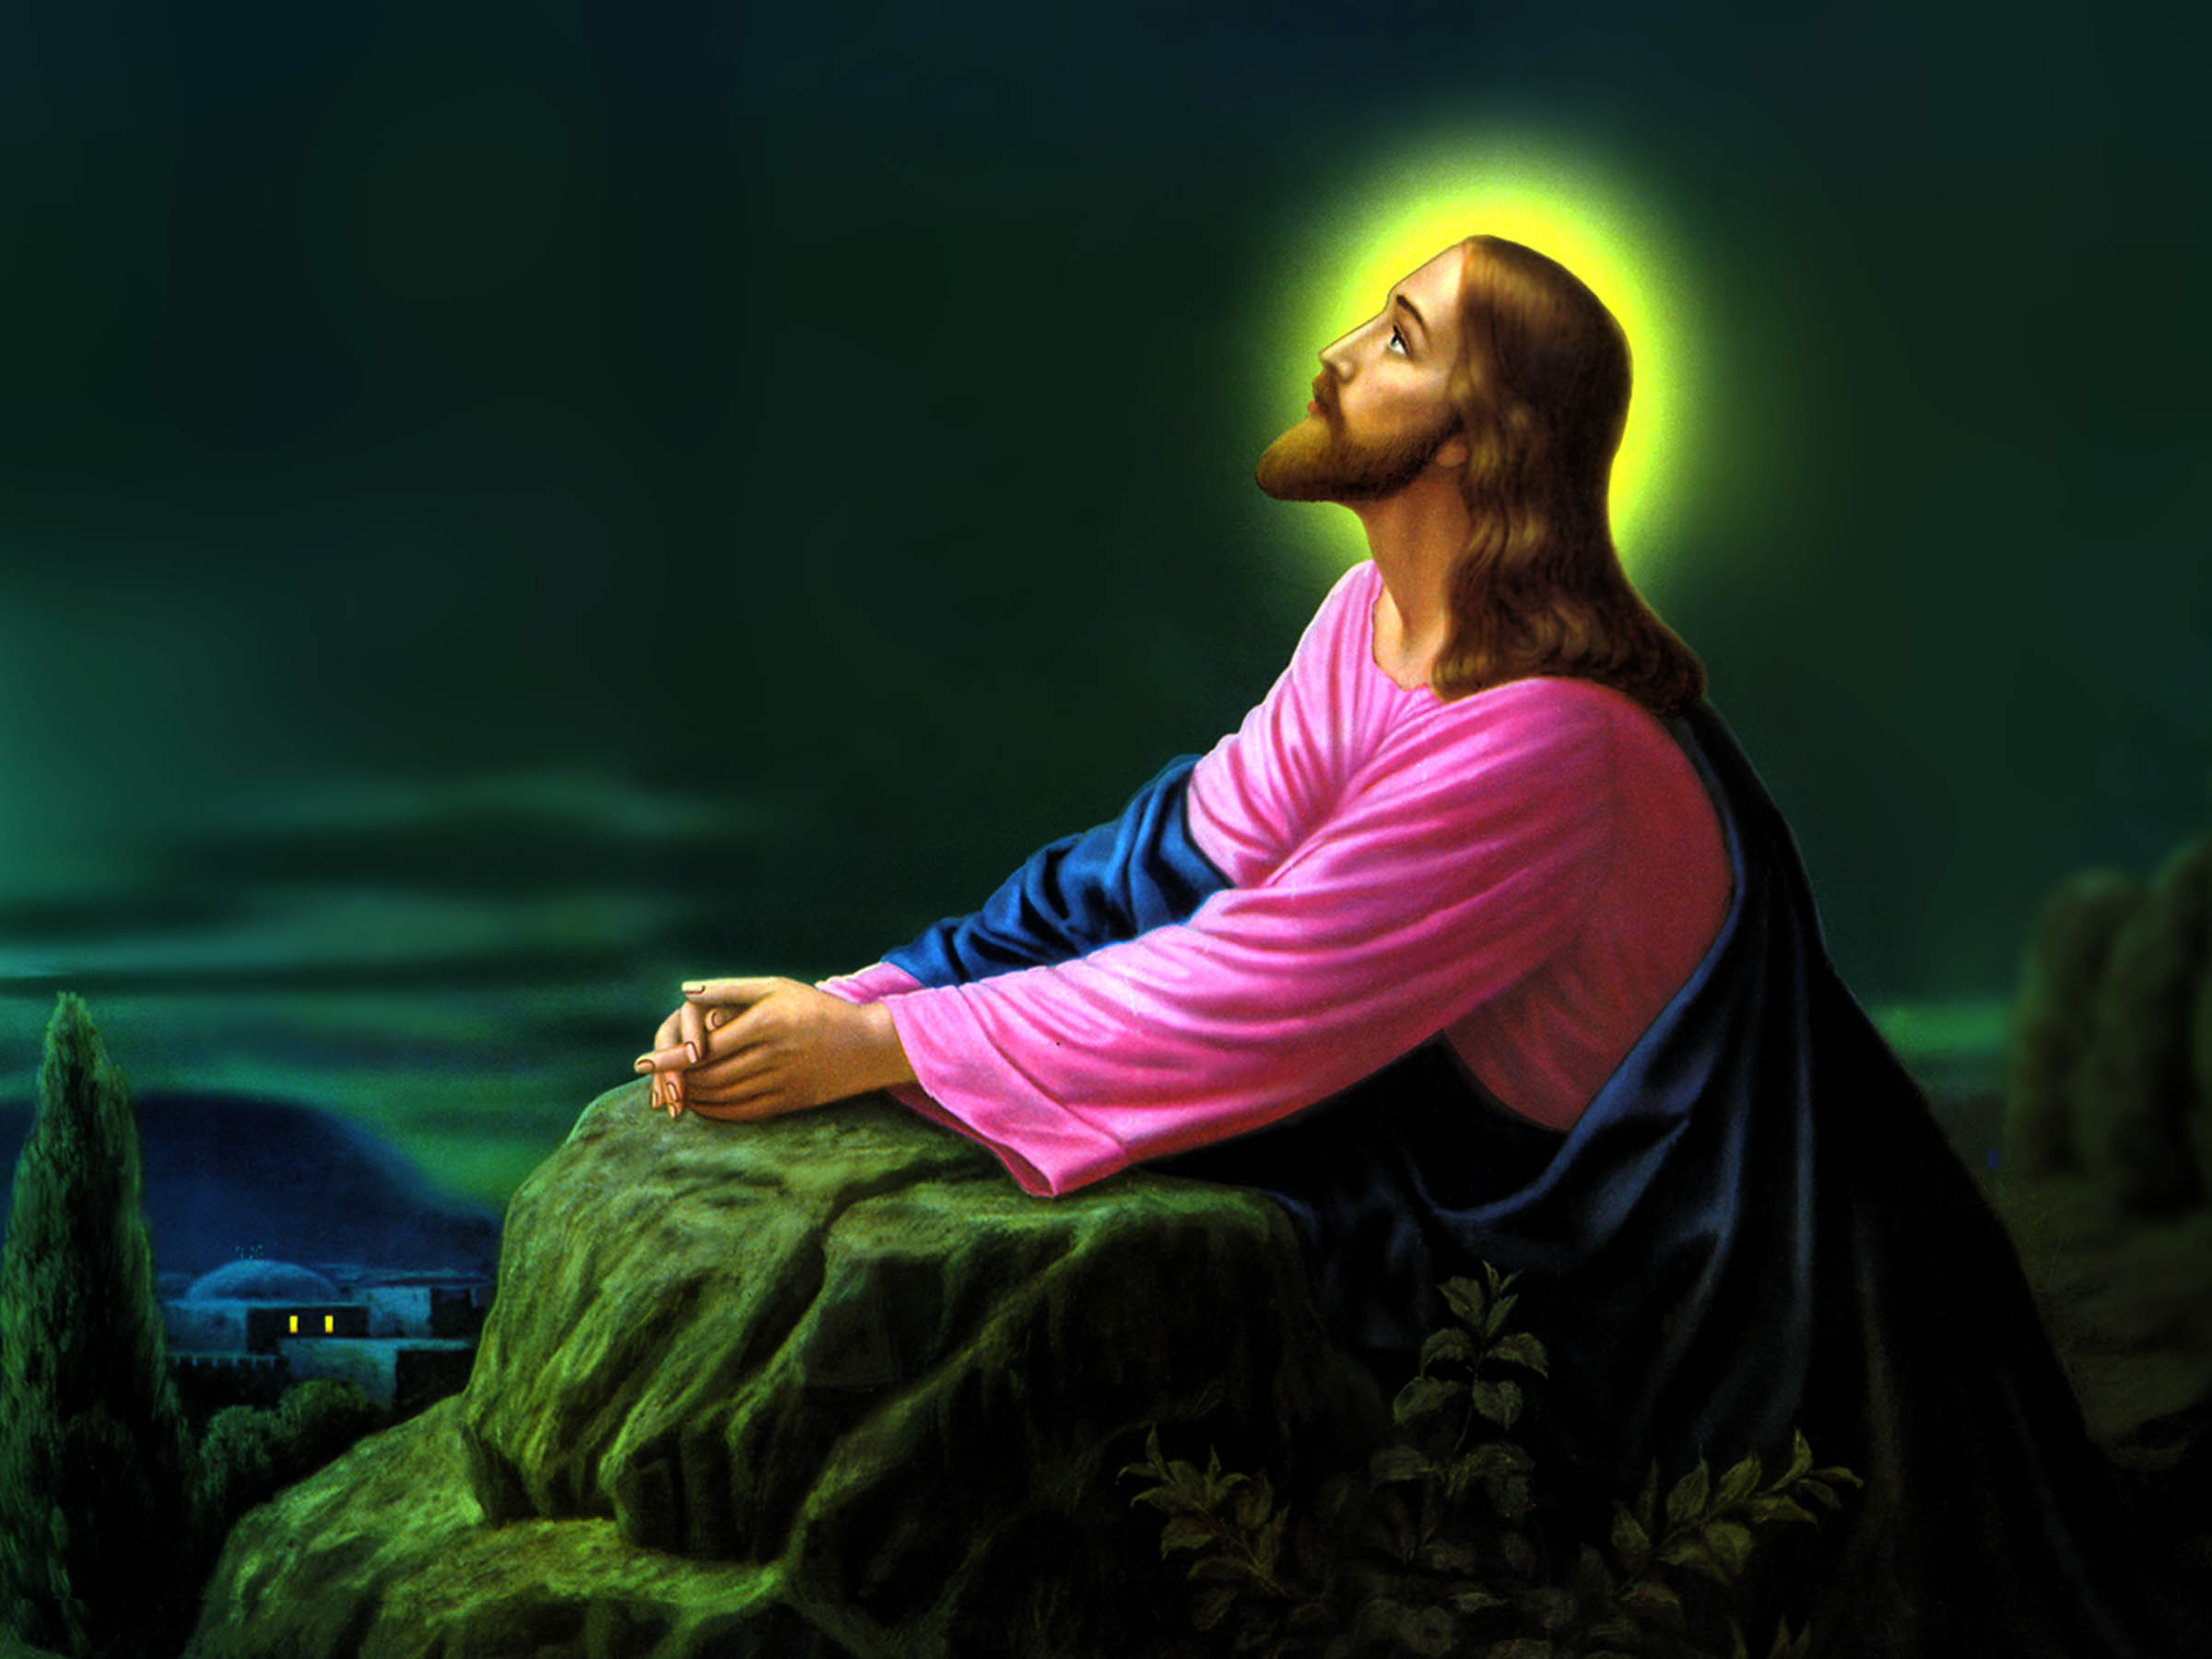 Jesus Christ Praying Wallpapers 03 2400x1800